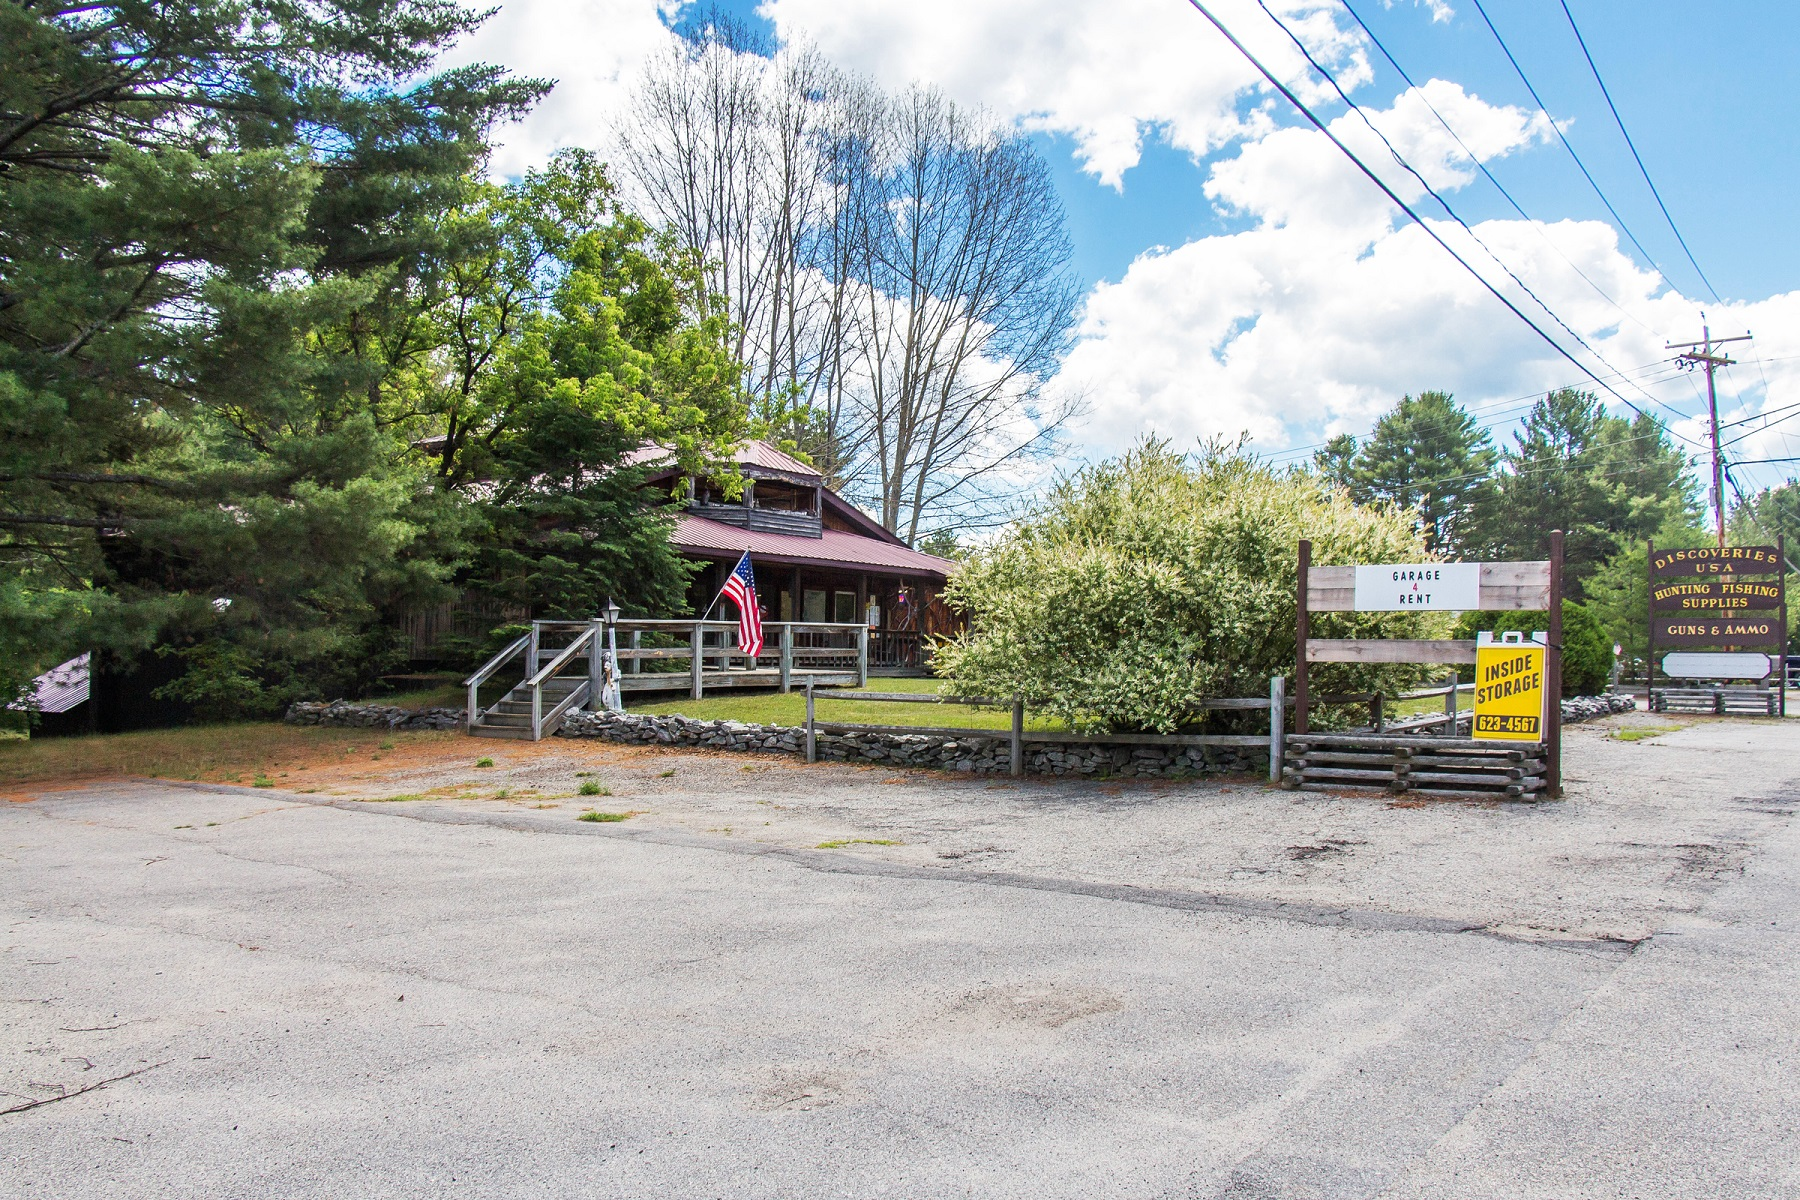 Commercial for Sale at Discoveries 4498 State Route 9 Warrensburg, New York 12885 United States